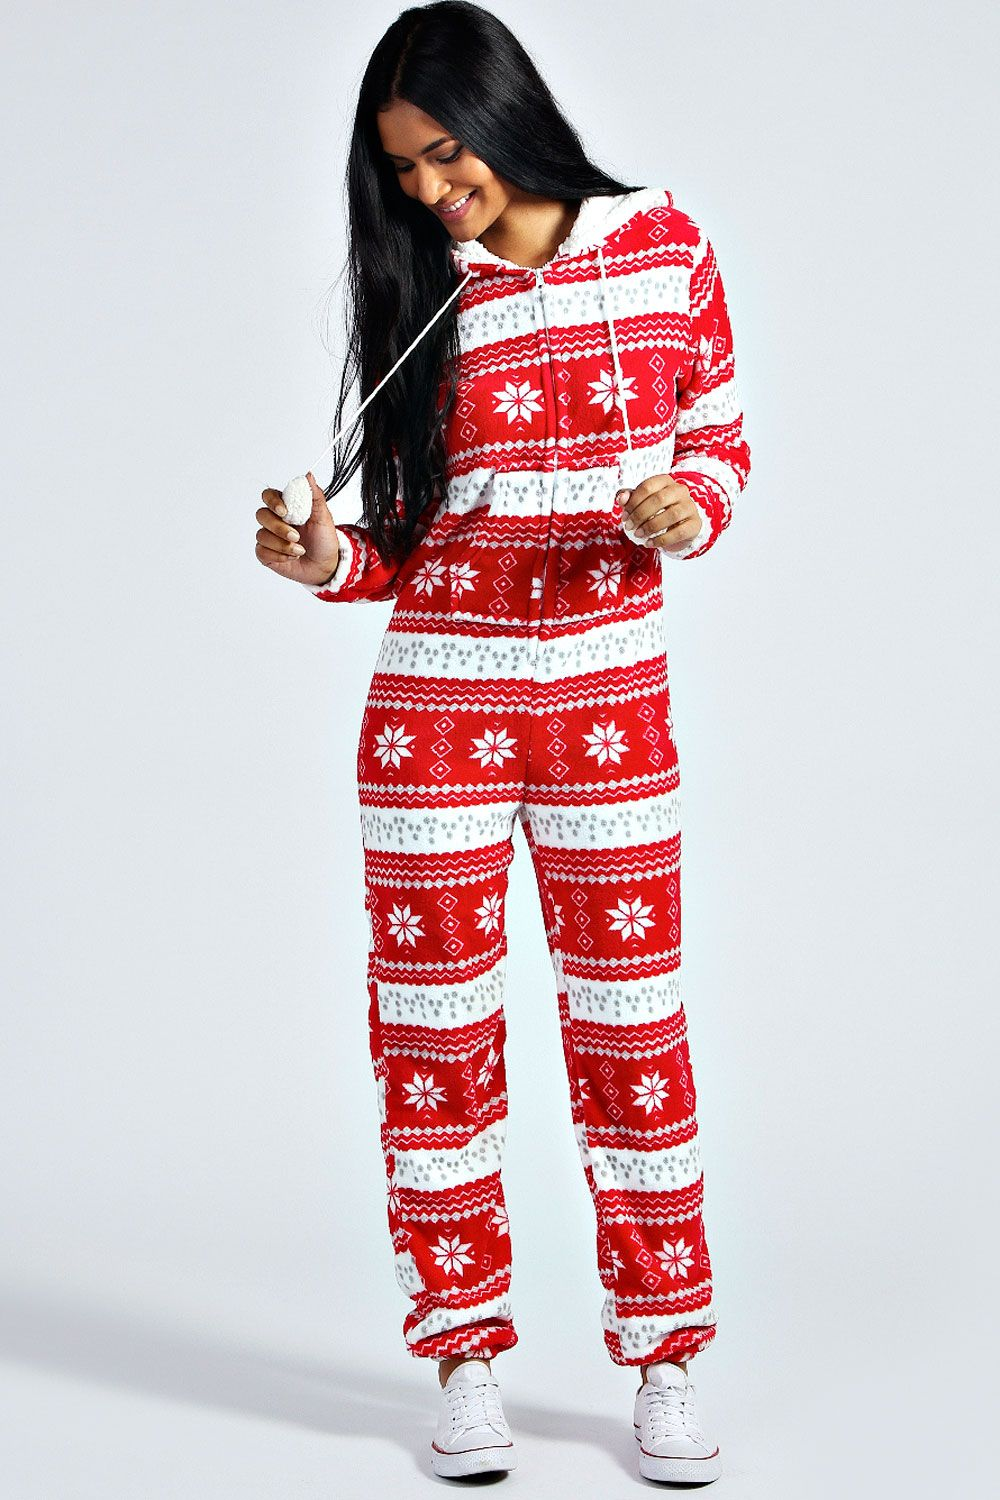 Christmas Onesie.Details About Boohoo Adult Christmas Novelty Onesie Adult